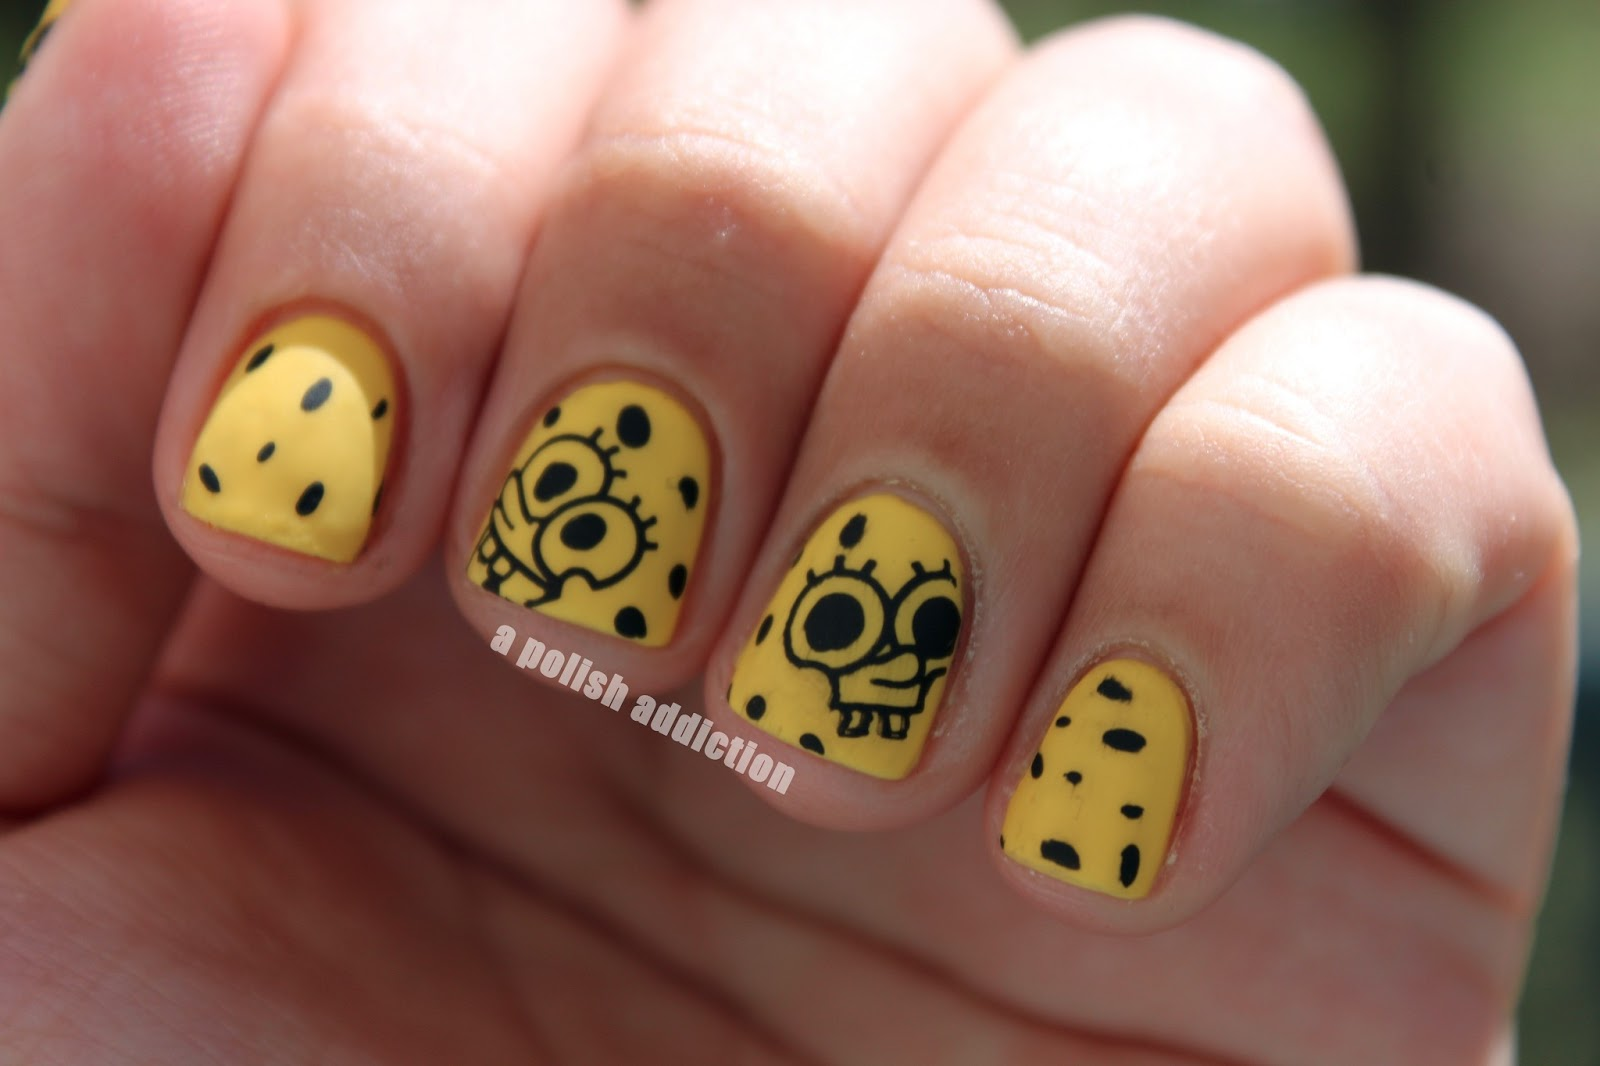 Spongebob nail art designs gallery nail art and nail design ideas spongebob nail art image collections nail art and nail design ideas a polish addiction who lives prinsesfo Image collections